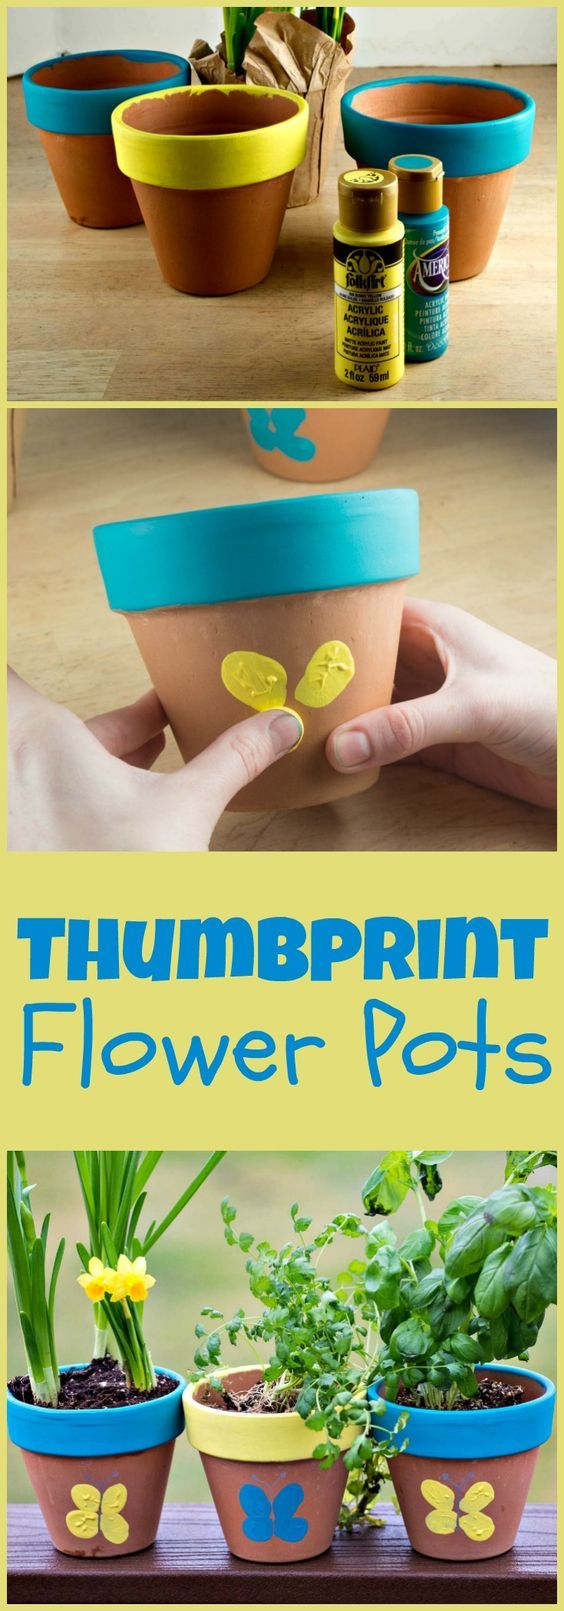 Thumbprint Flower Pots - make cute thumbprint butterflies on terracotta flower pots for an easy spring craft